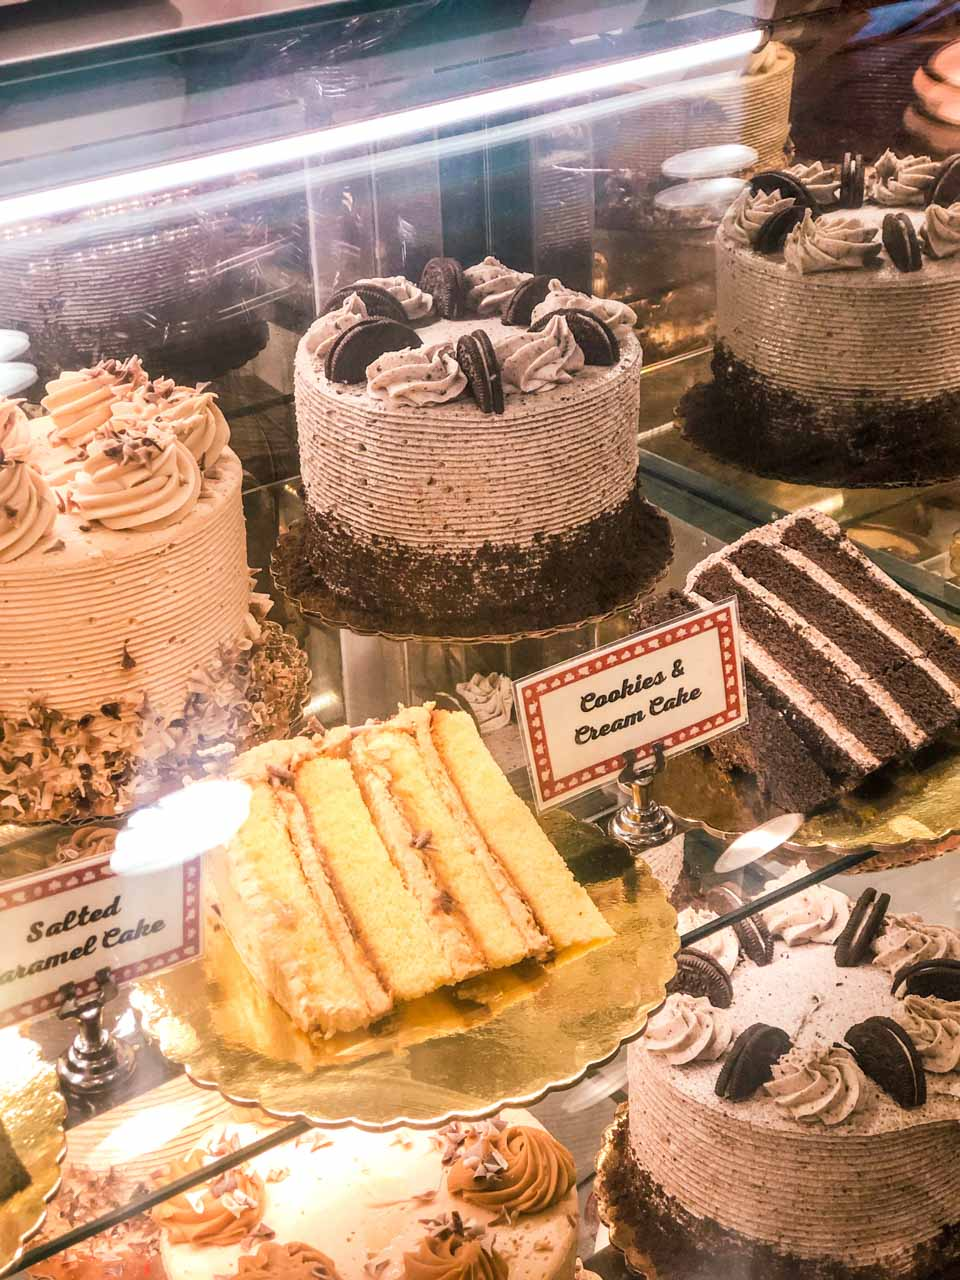 Salted caramel cake and cookies & cream cake on display inside Carlo's Bakery in Hoboken, NJ